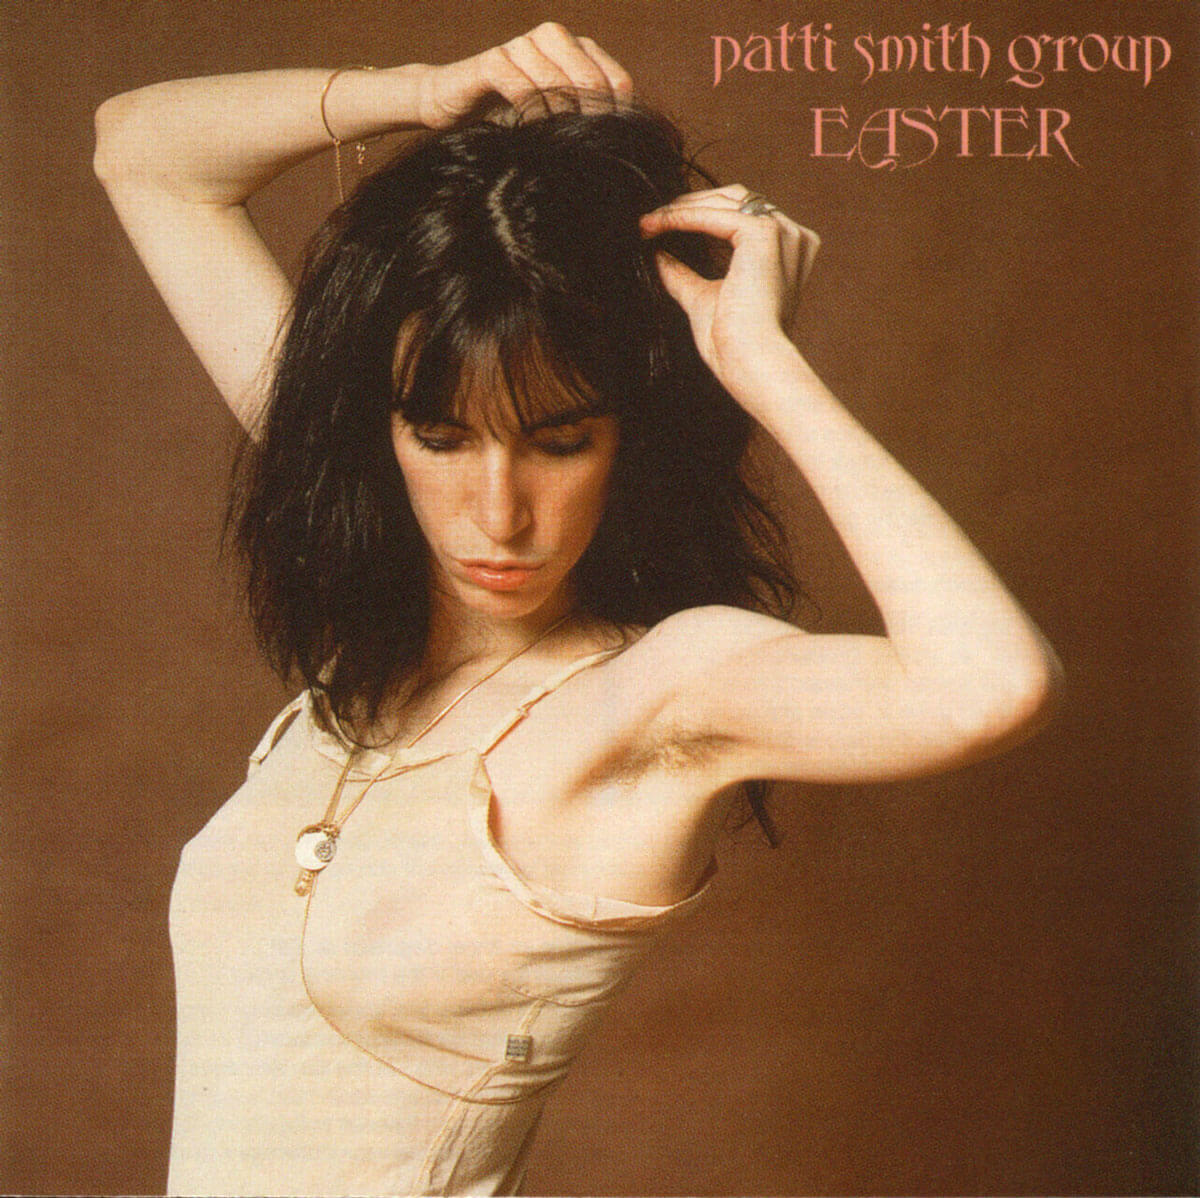 patti-smith-album-cover.jpg